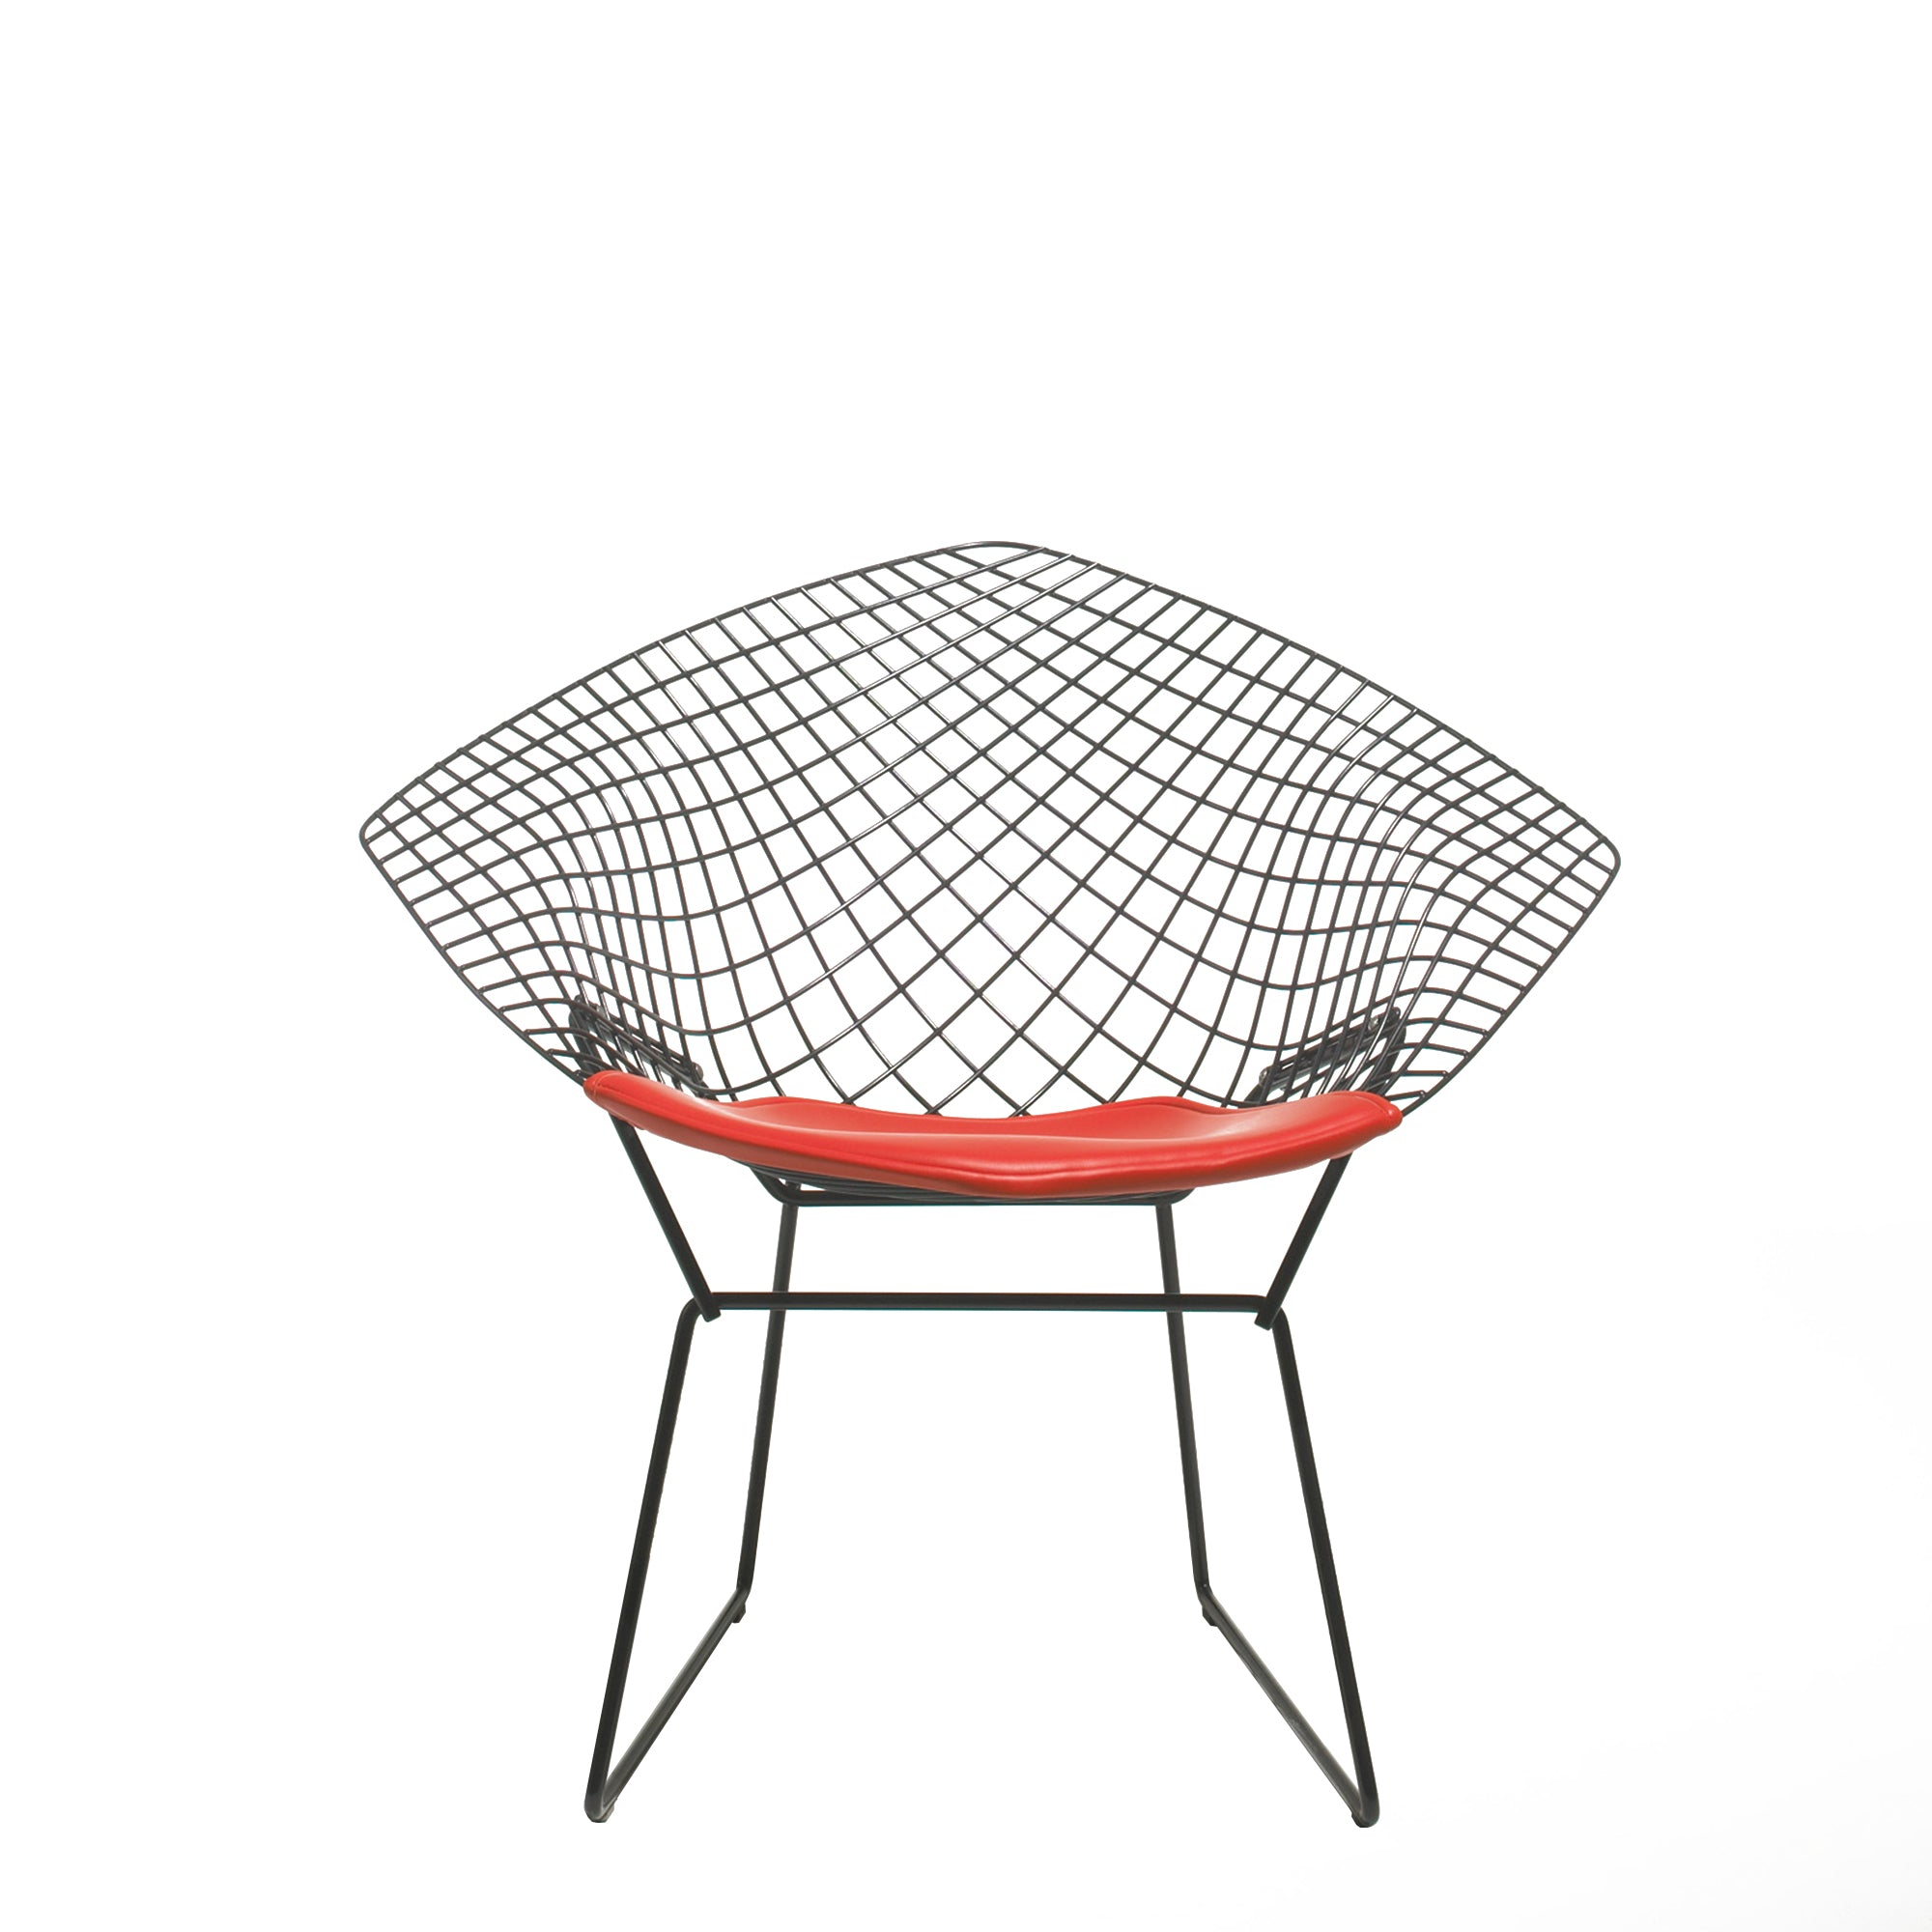 Knoll - Bertoia Diamond Lounge Chair with Seat Pad